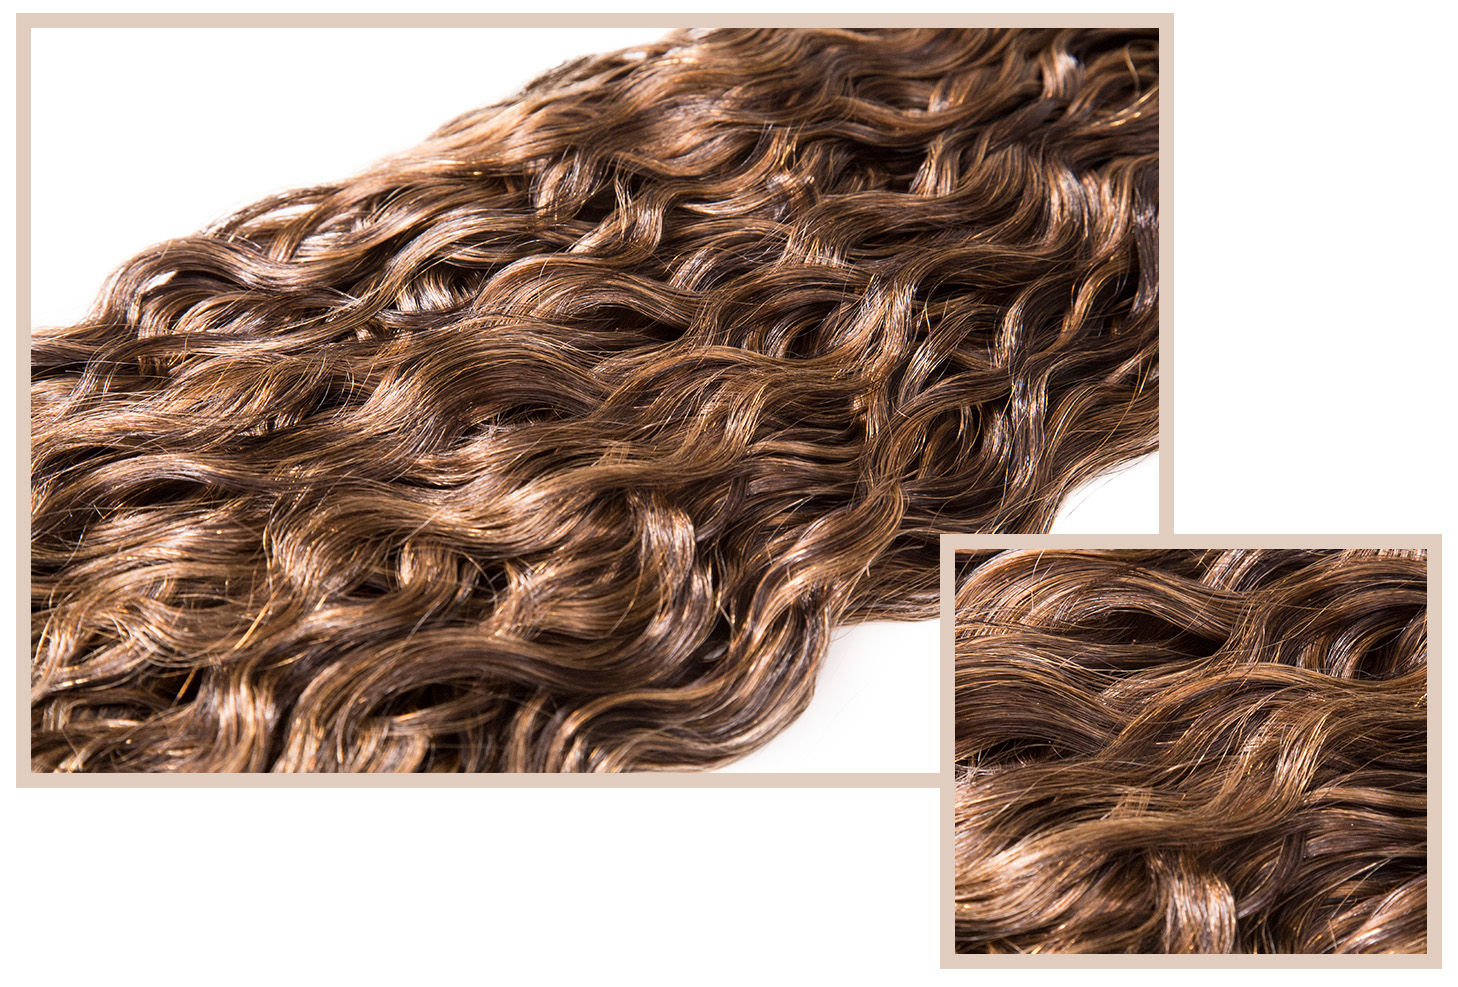 FRENCH REFINED - Available in Classic, LuxeIrresistibly soft, spiral curl texture that looks tousled and natural. Also ideal for achieving soft straight styles. French Refined is our most versatile extension.